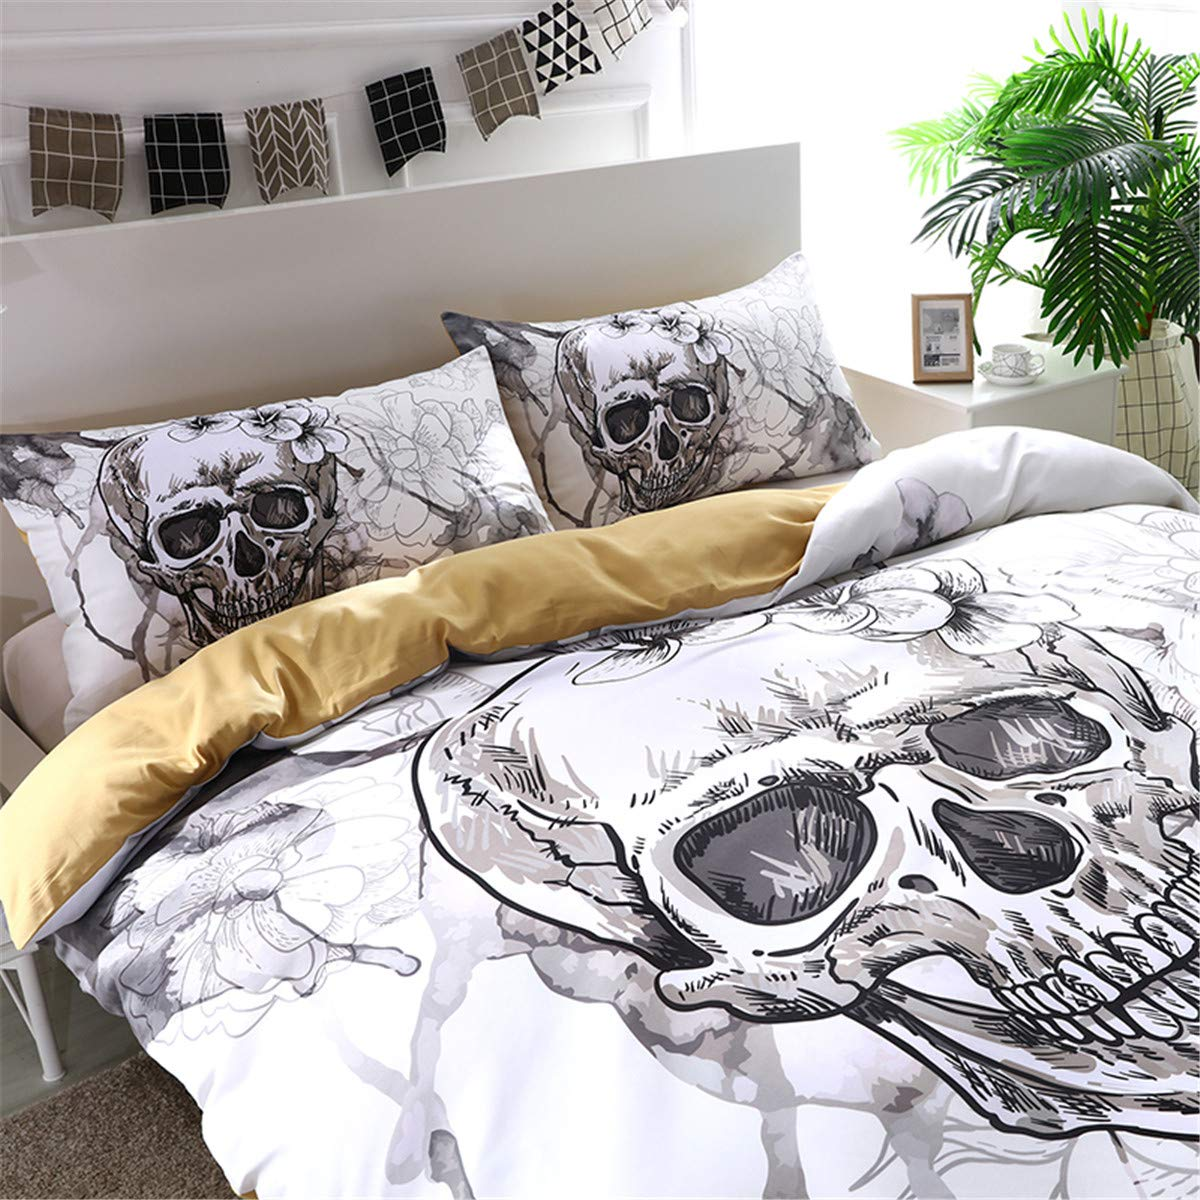 2Pcs, Twins Sugar Skull Duvet Cover Twin Skeleton Floral Skull Pattern Printed Bedding Set Microfiber Ghost Comforter Cover with Zipper for Teens Boys Adults